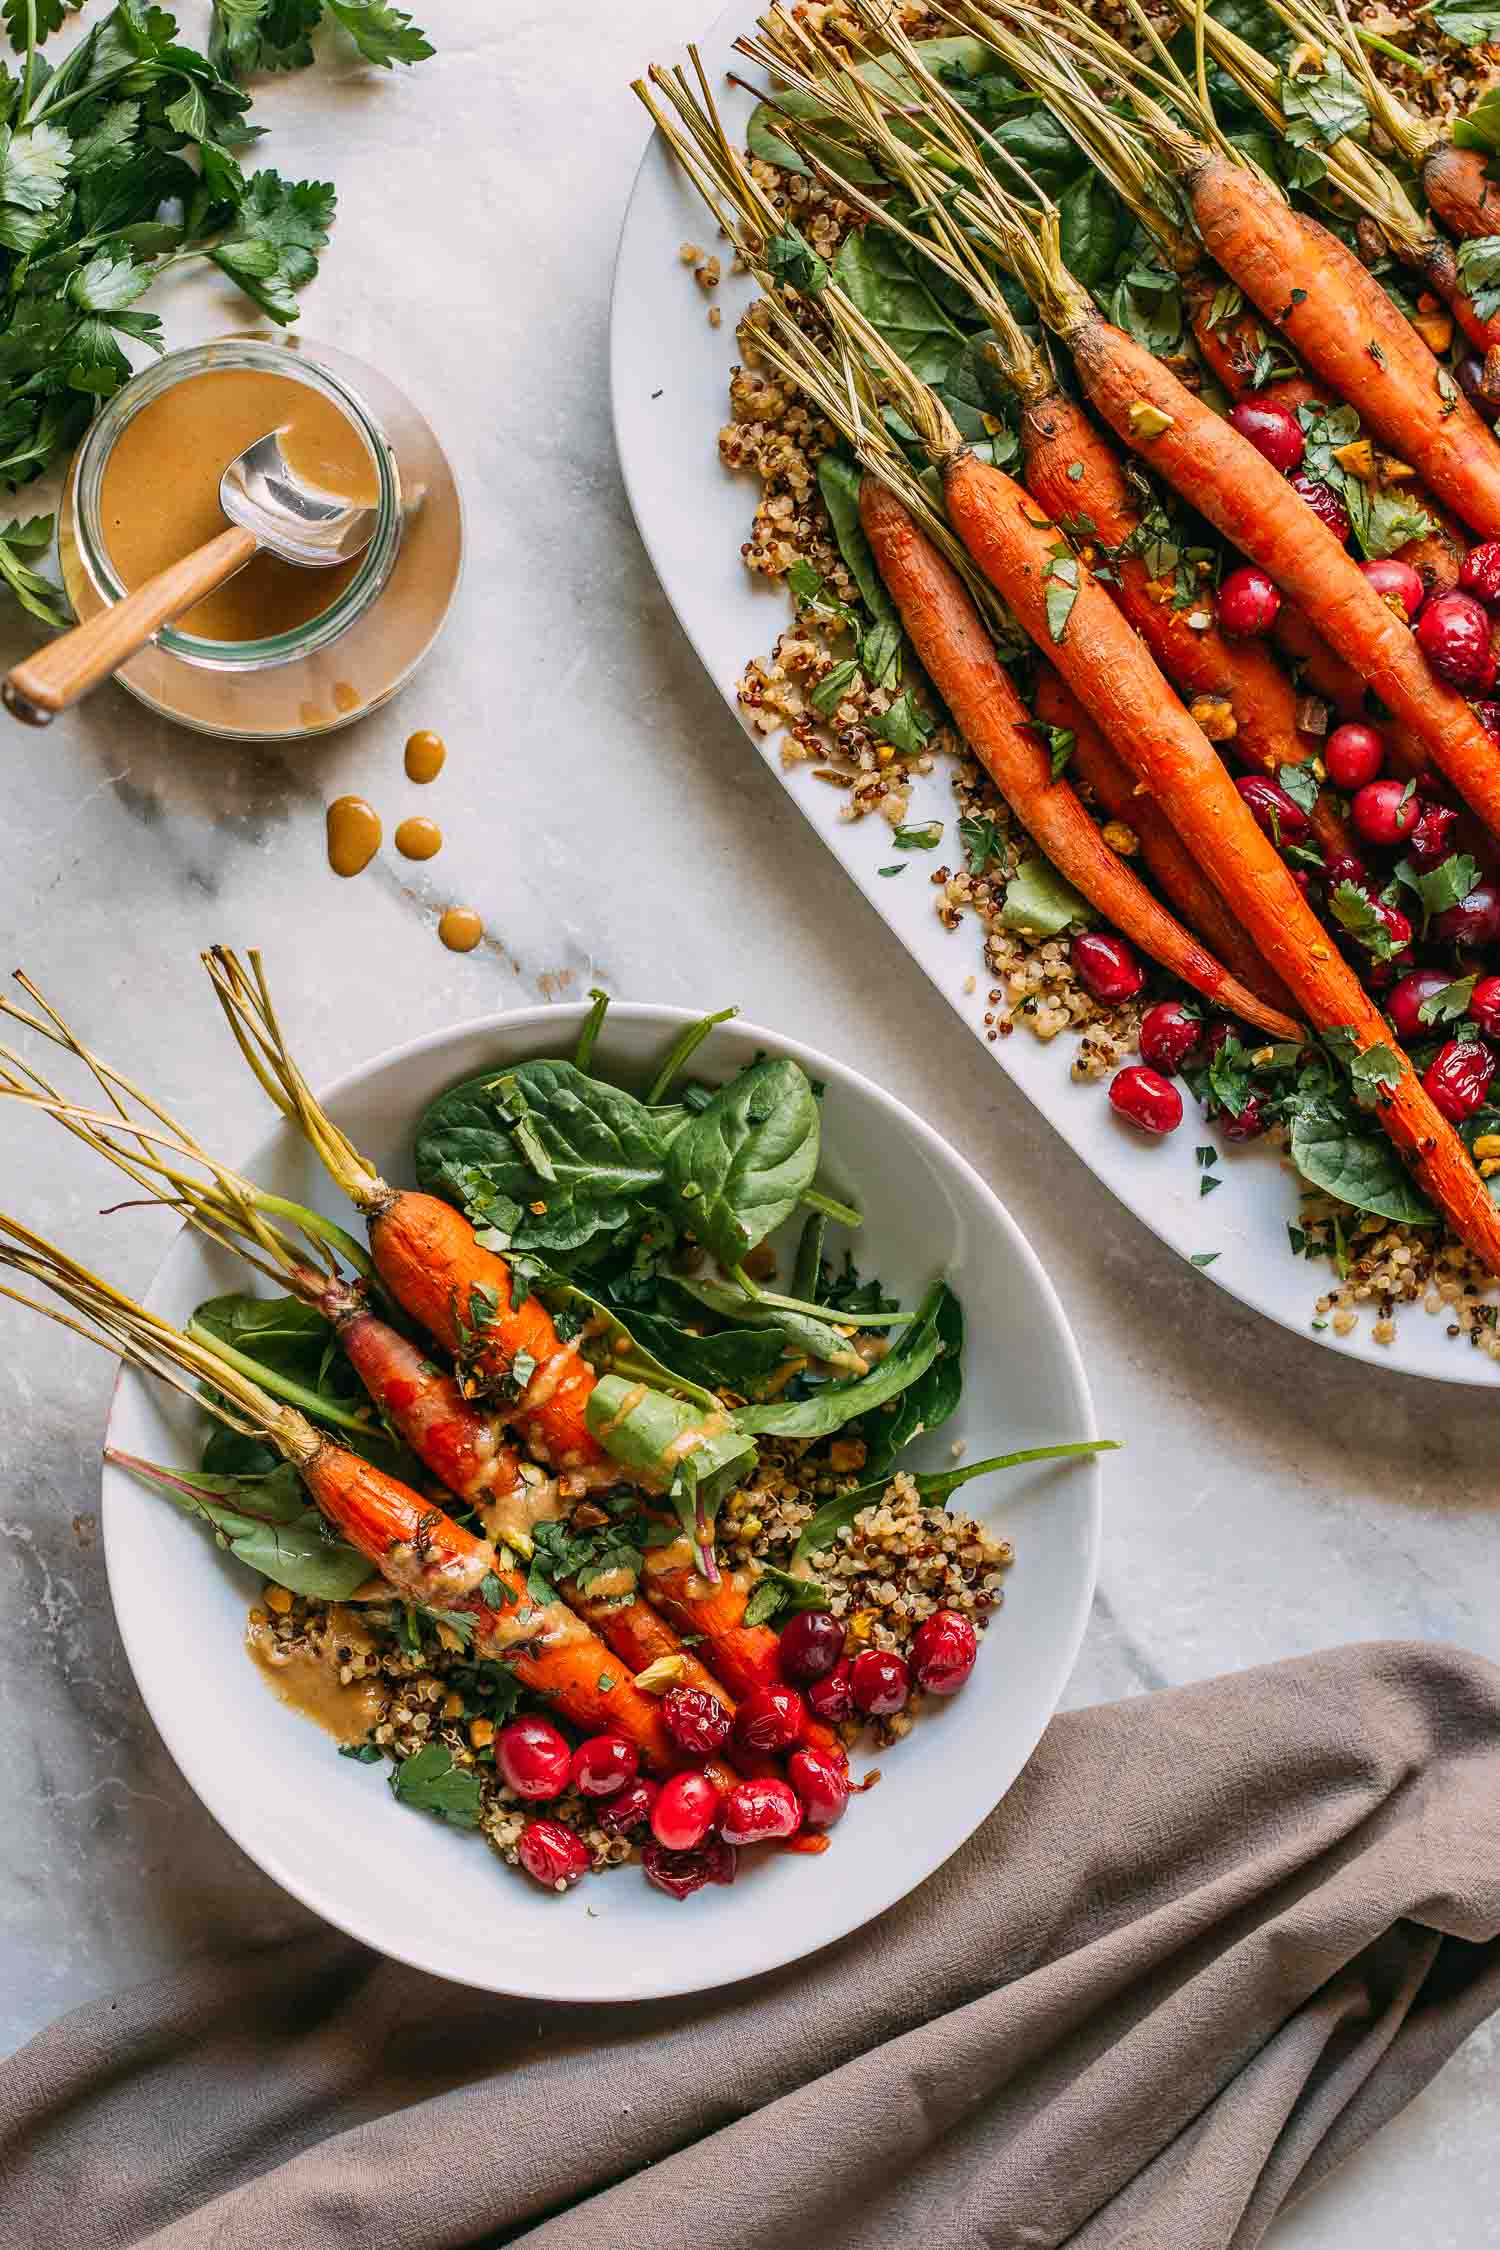 20 Root-to-Stem Plant-Based Recipes